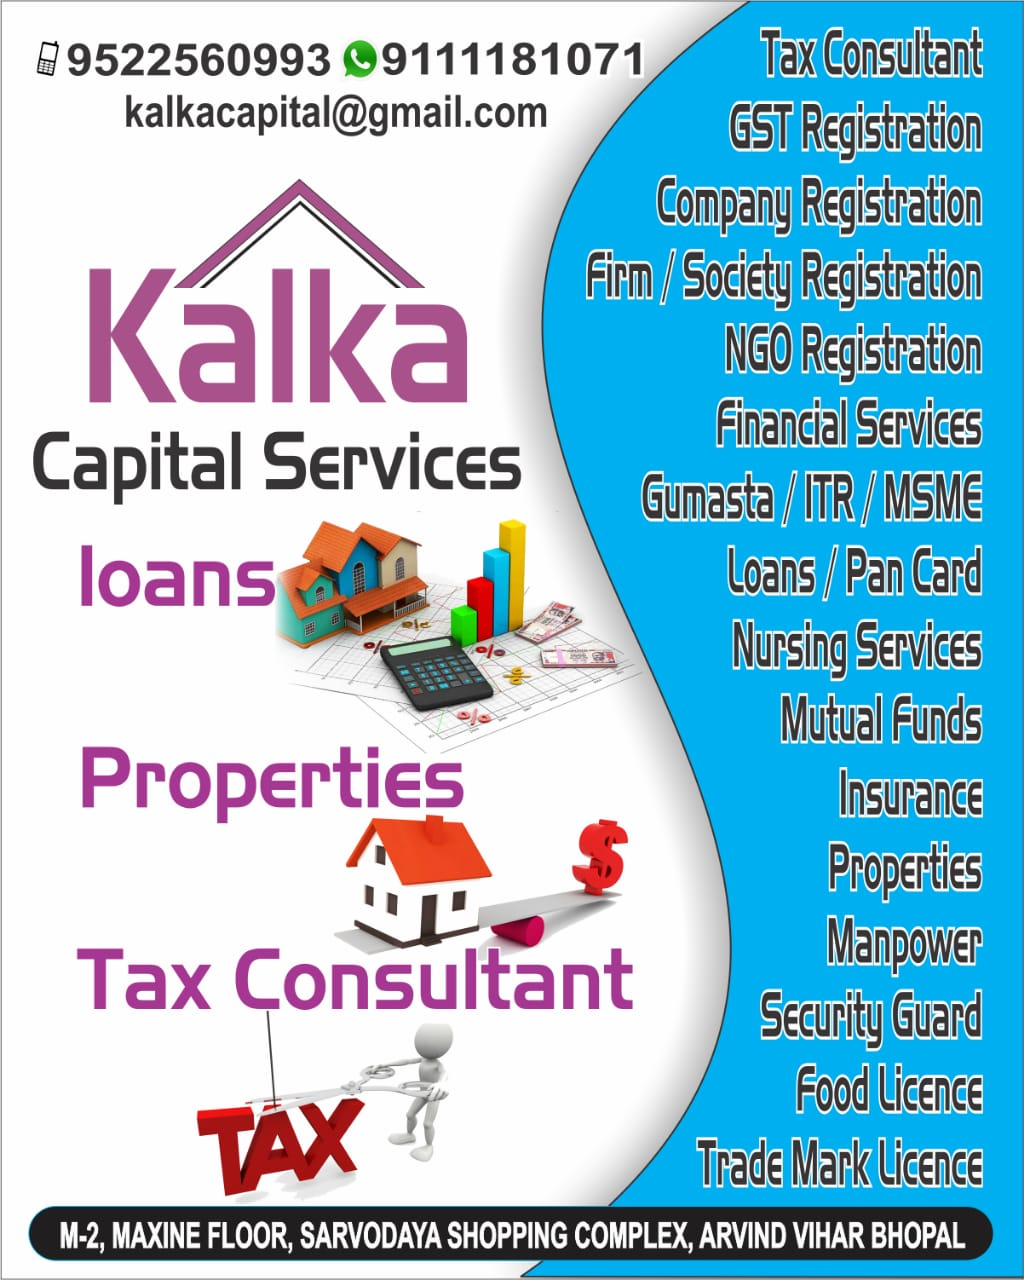 Placement Consultants in Ashoka Garden, Bhopal, Manpower Consultancy